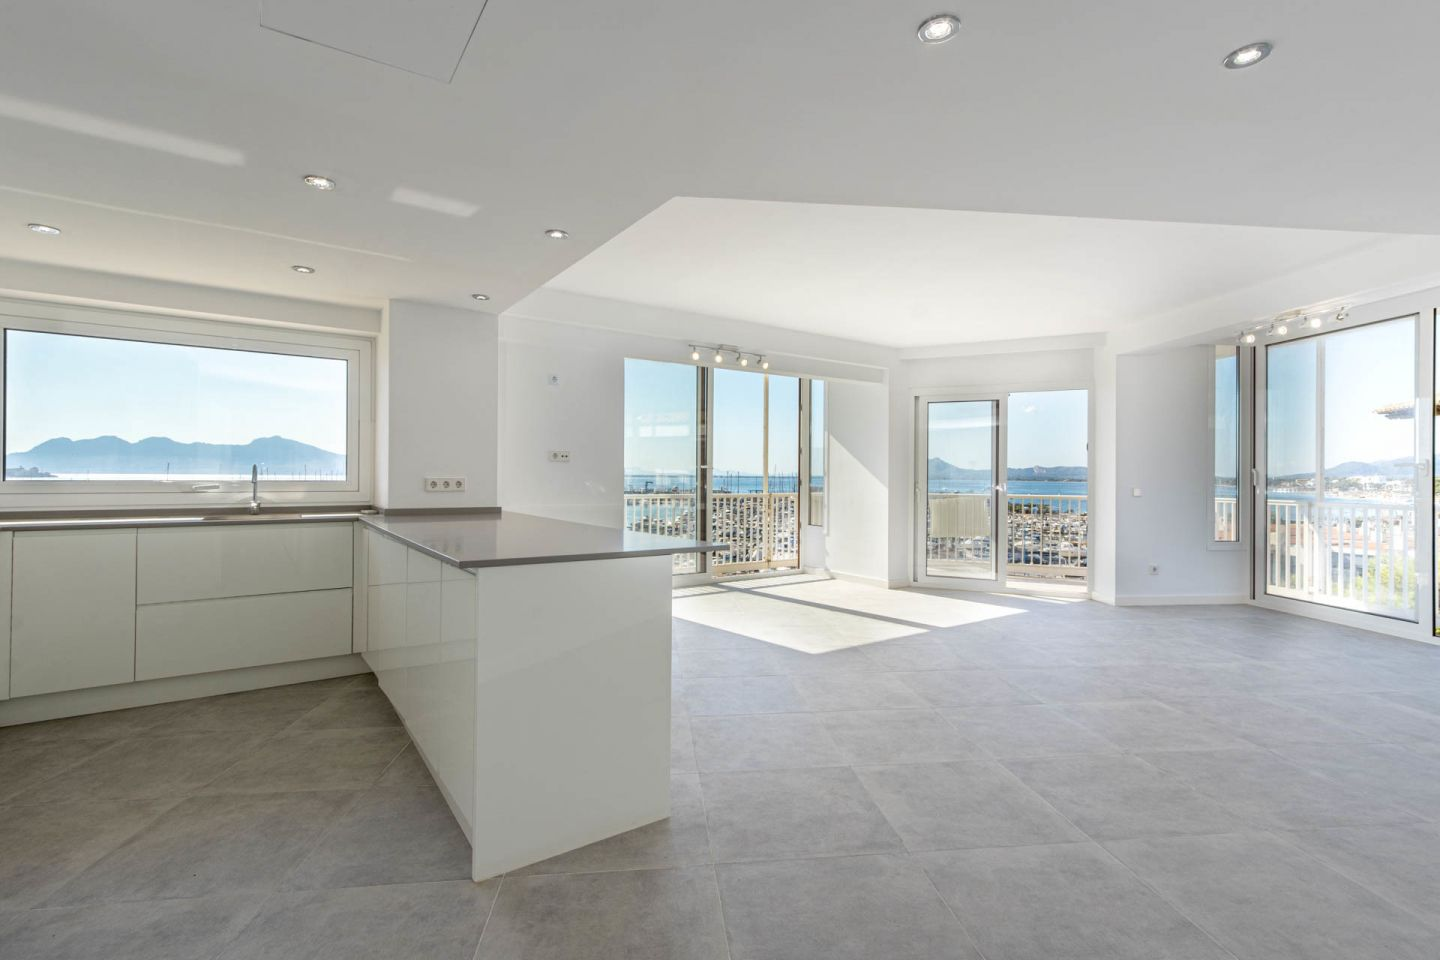 4 Bed Apartment for sale in PUERTO POLLENSA 5